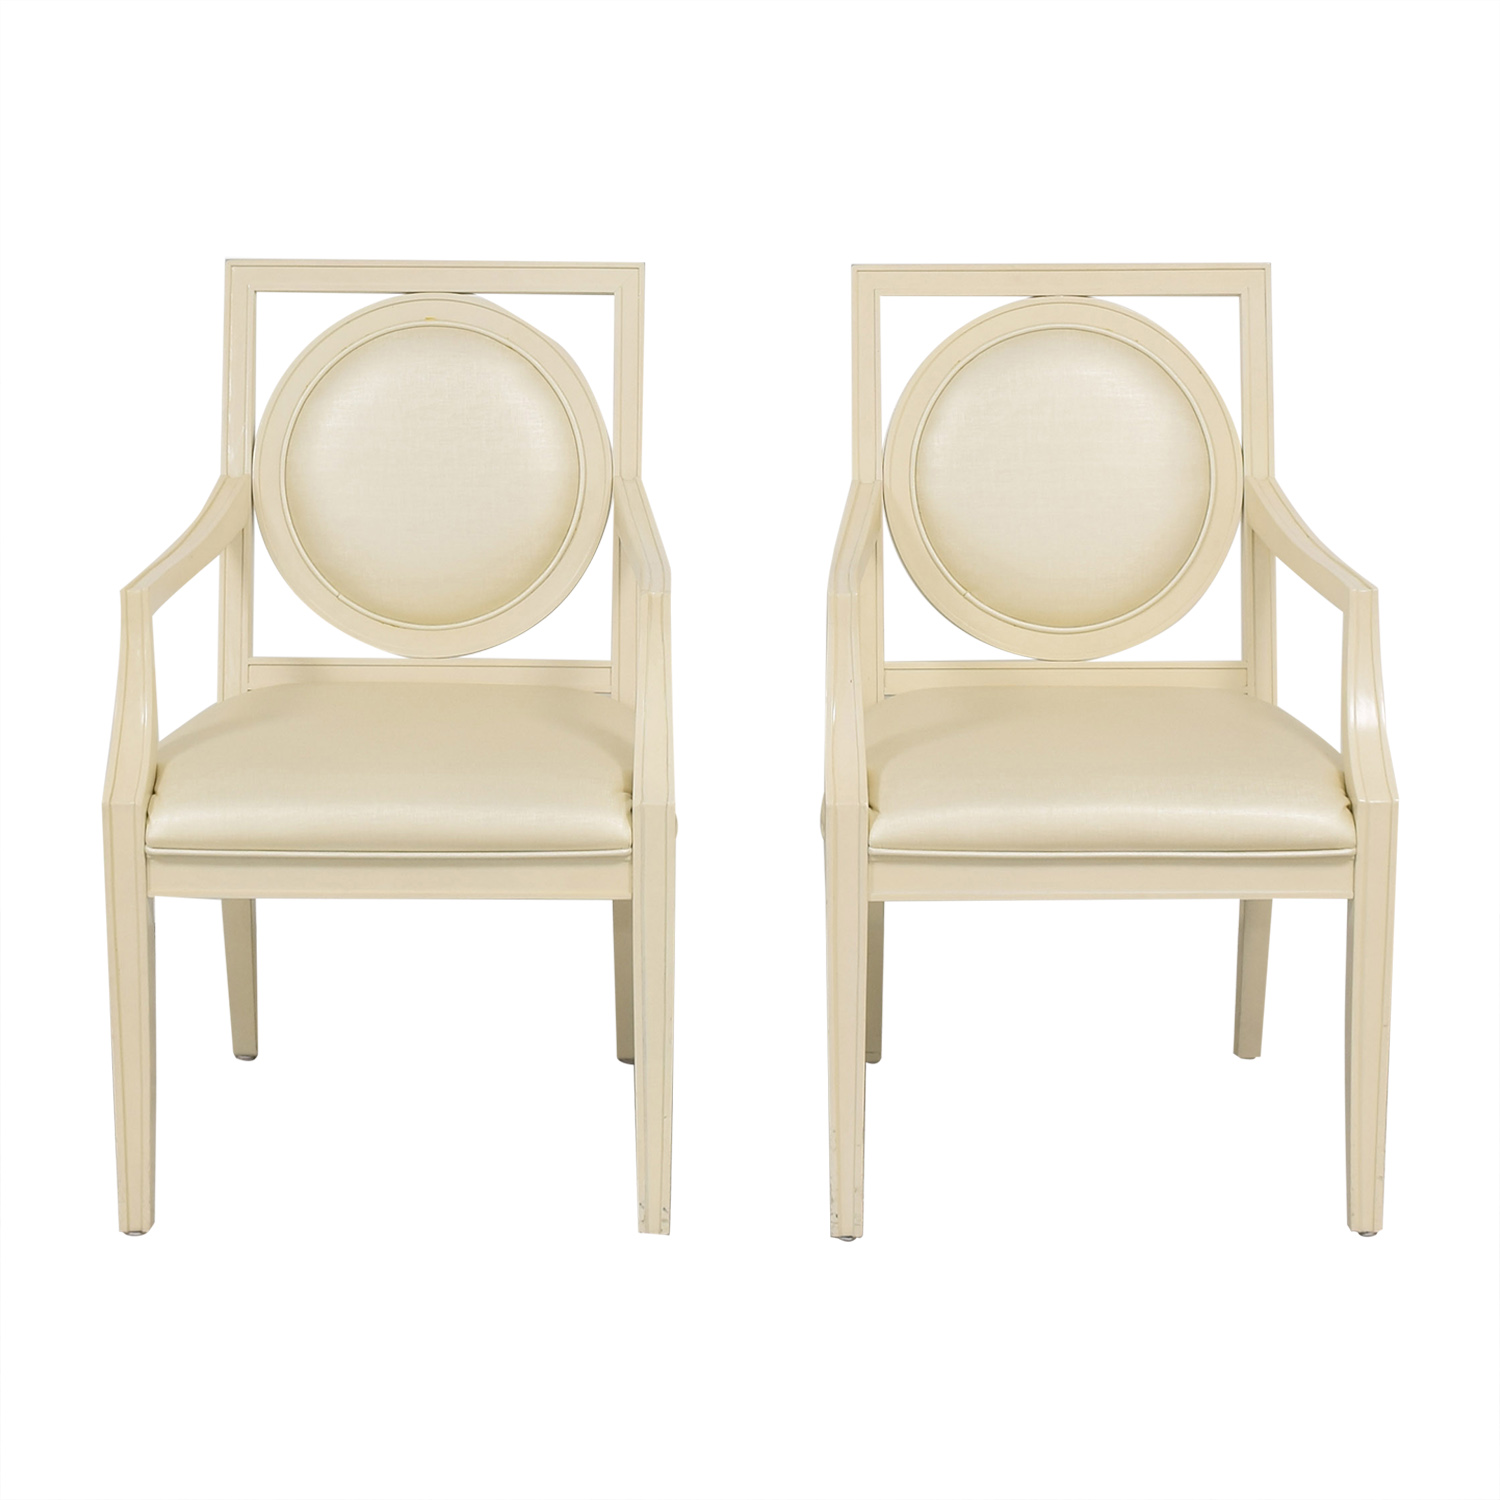 Bernhardt Bernhardt Salon Arm Chairs pa